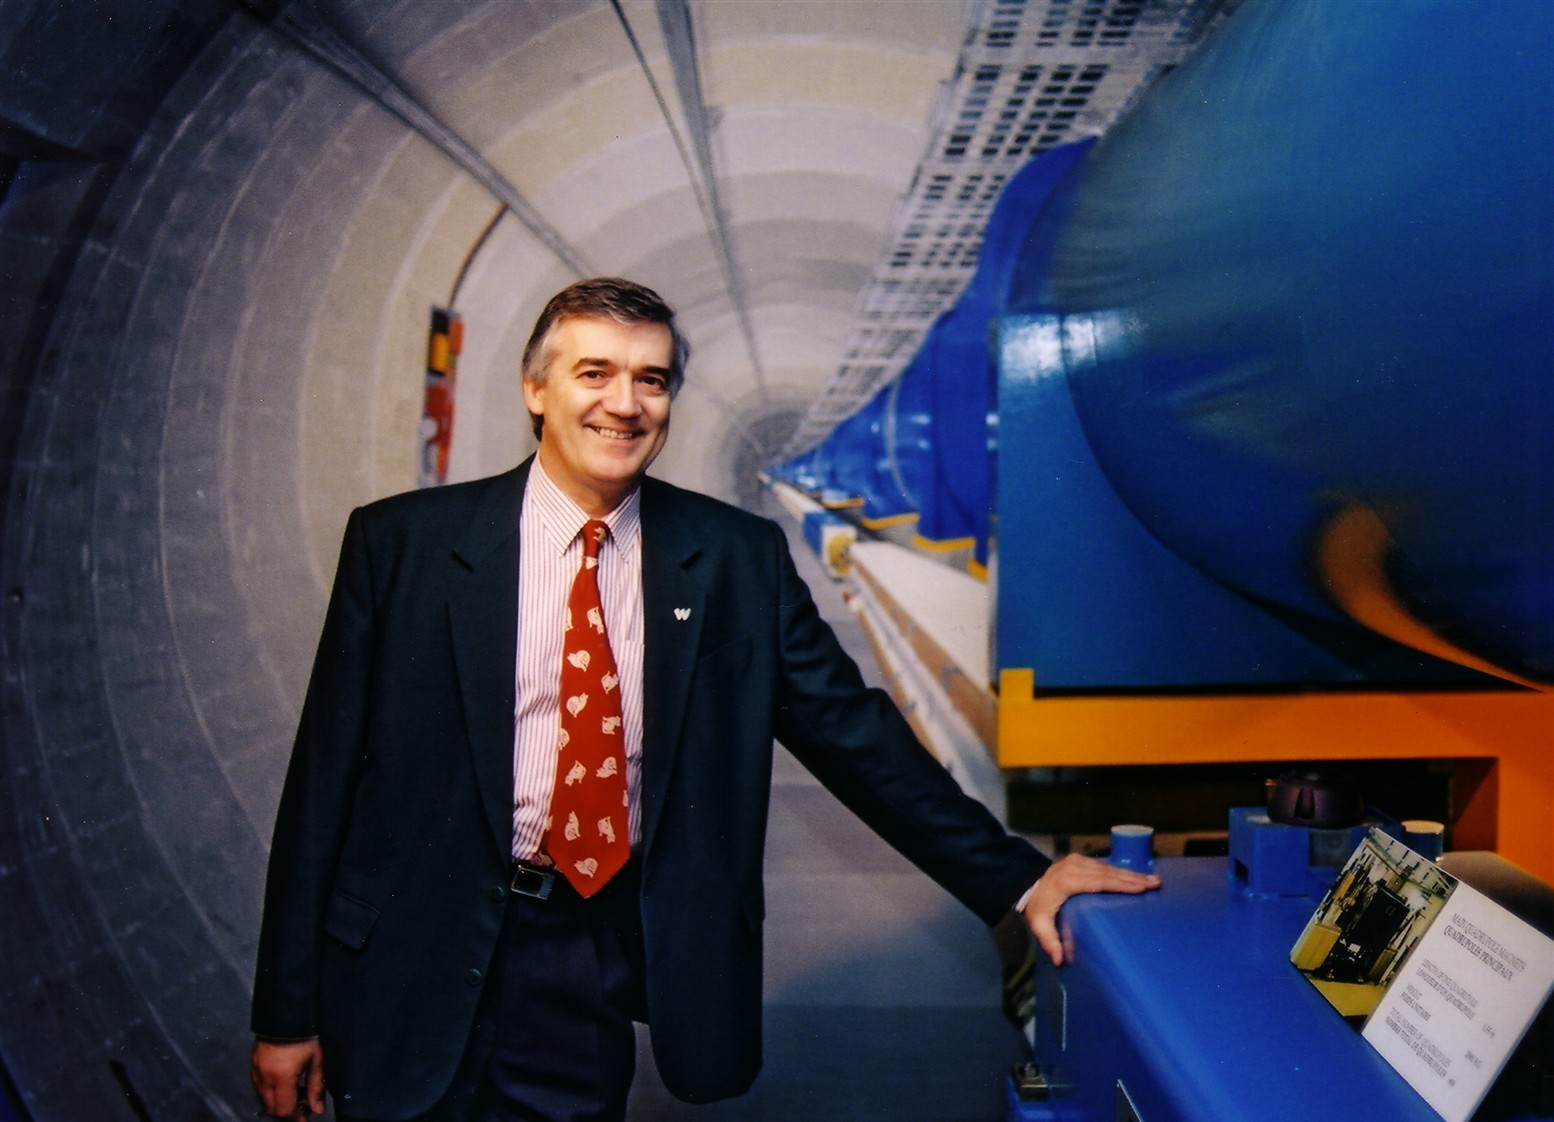 Robert Cailliau, Web pioneer, in front of the LHC exhibit at CERN's Microcosm museum in 2004